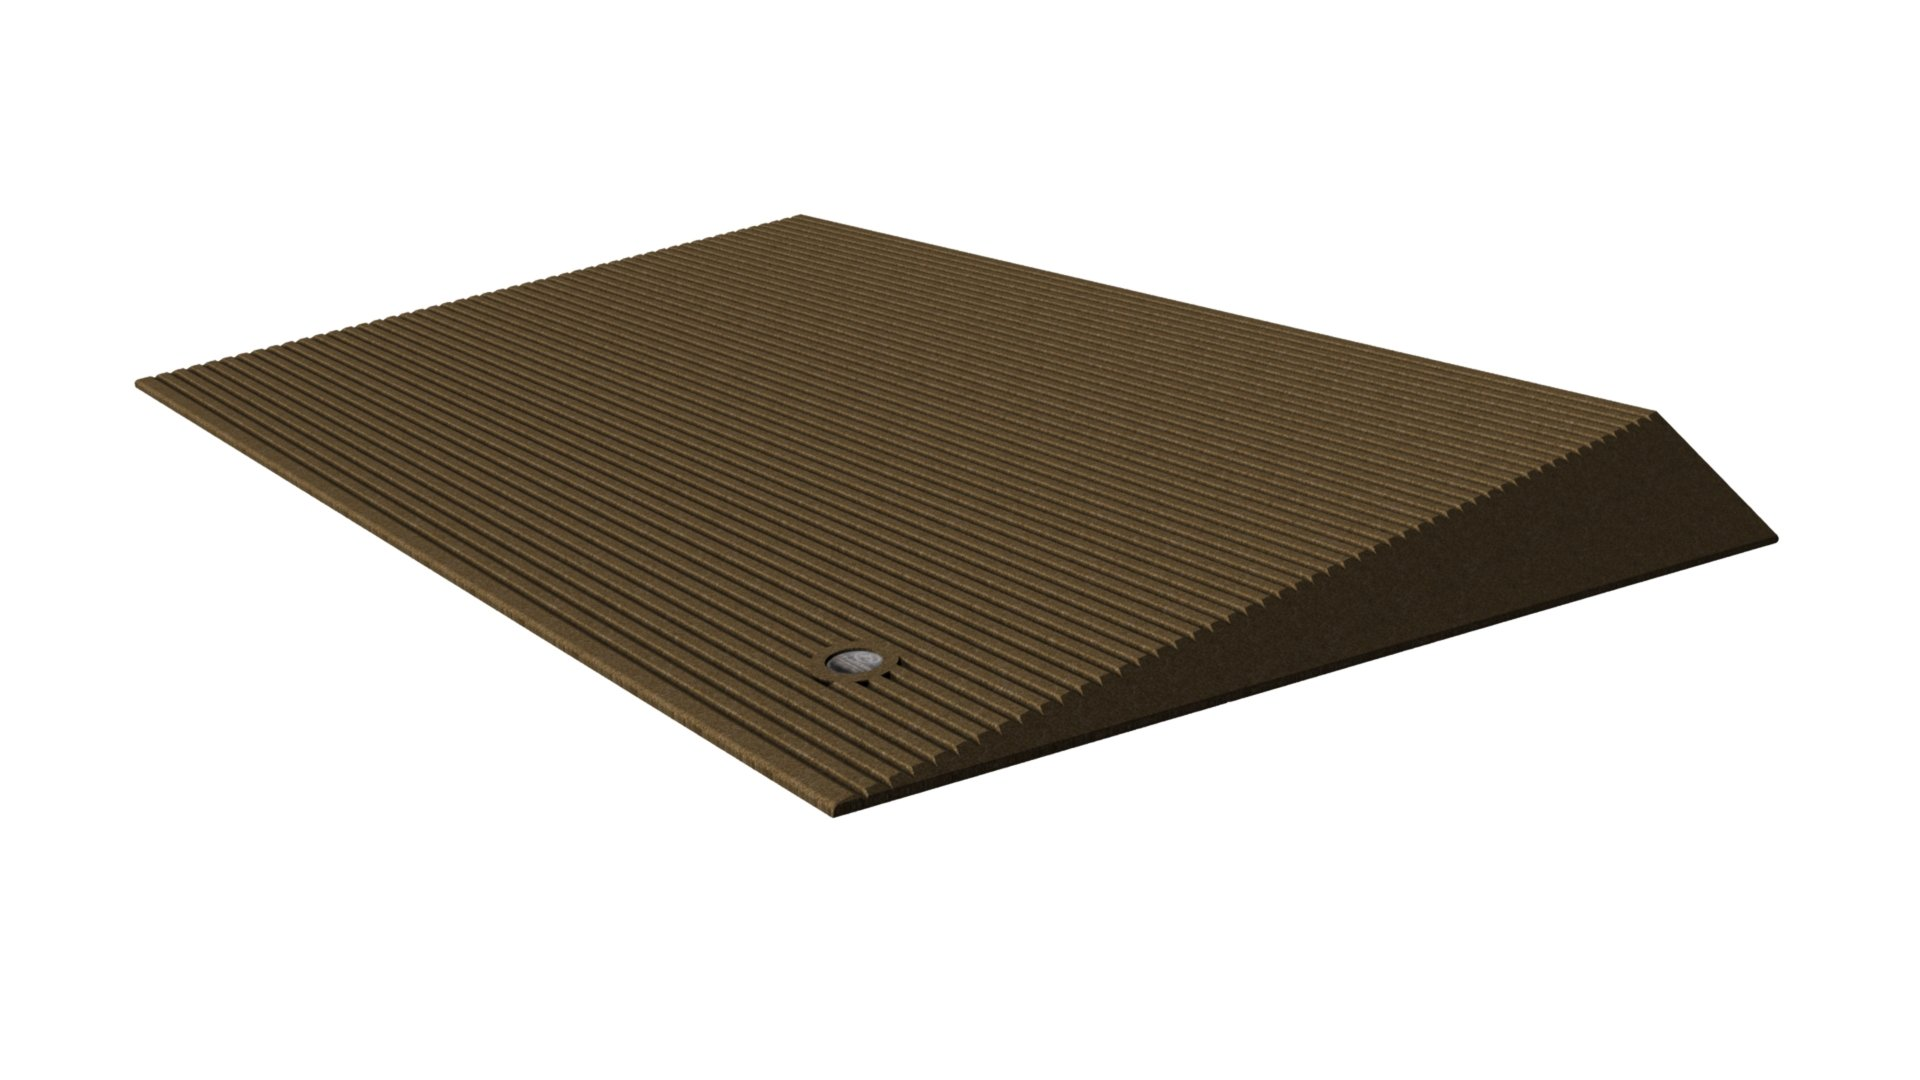 EZ-ACCESS TRANSITIONS Rubber Angled Entry Mat in Brown, 2.5'' Rise by EZ-ACCESS